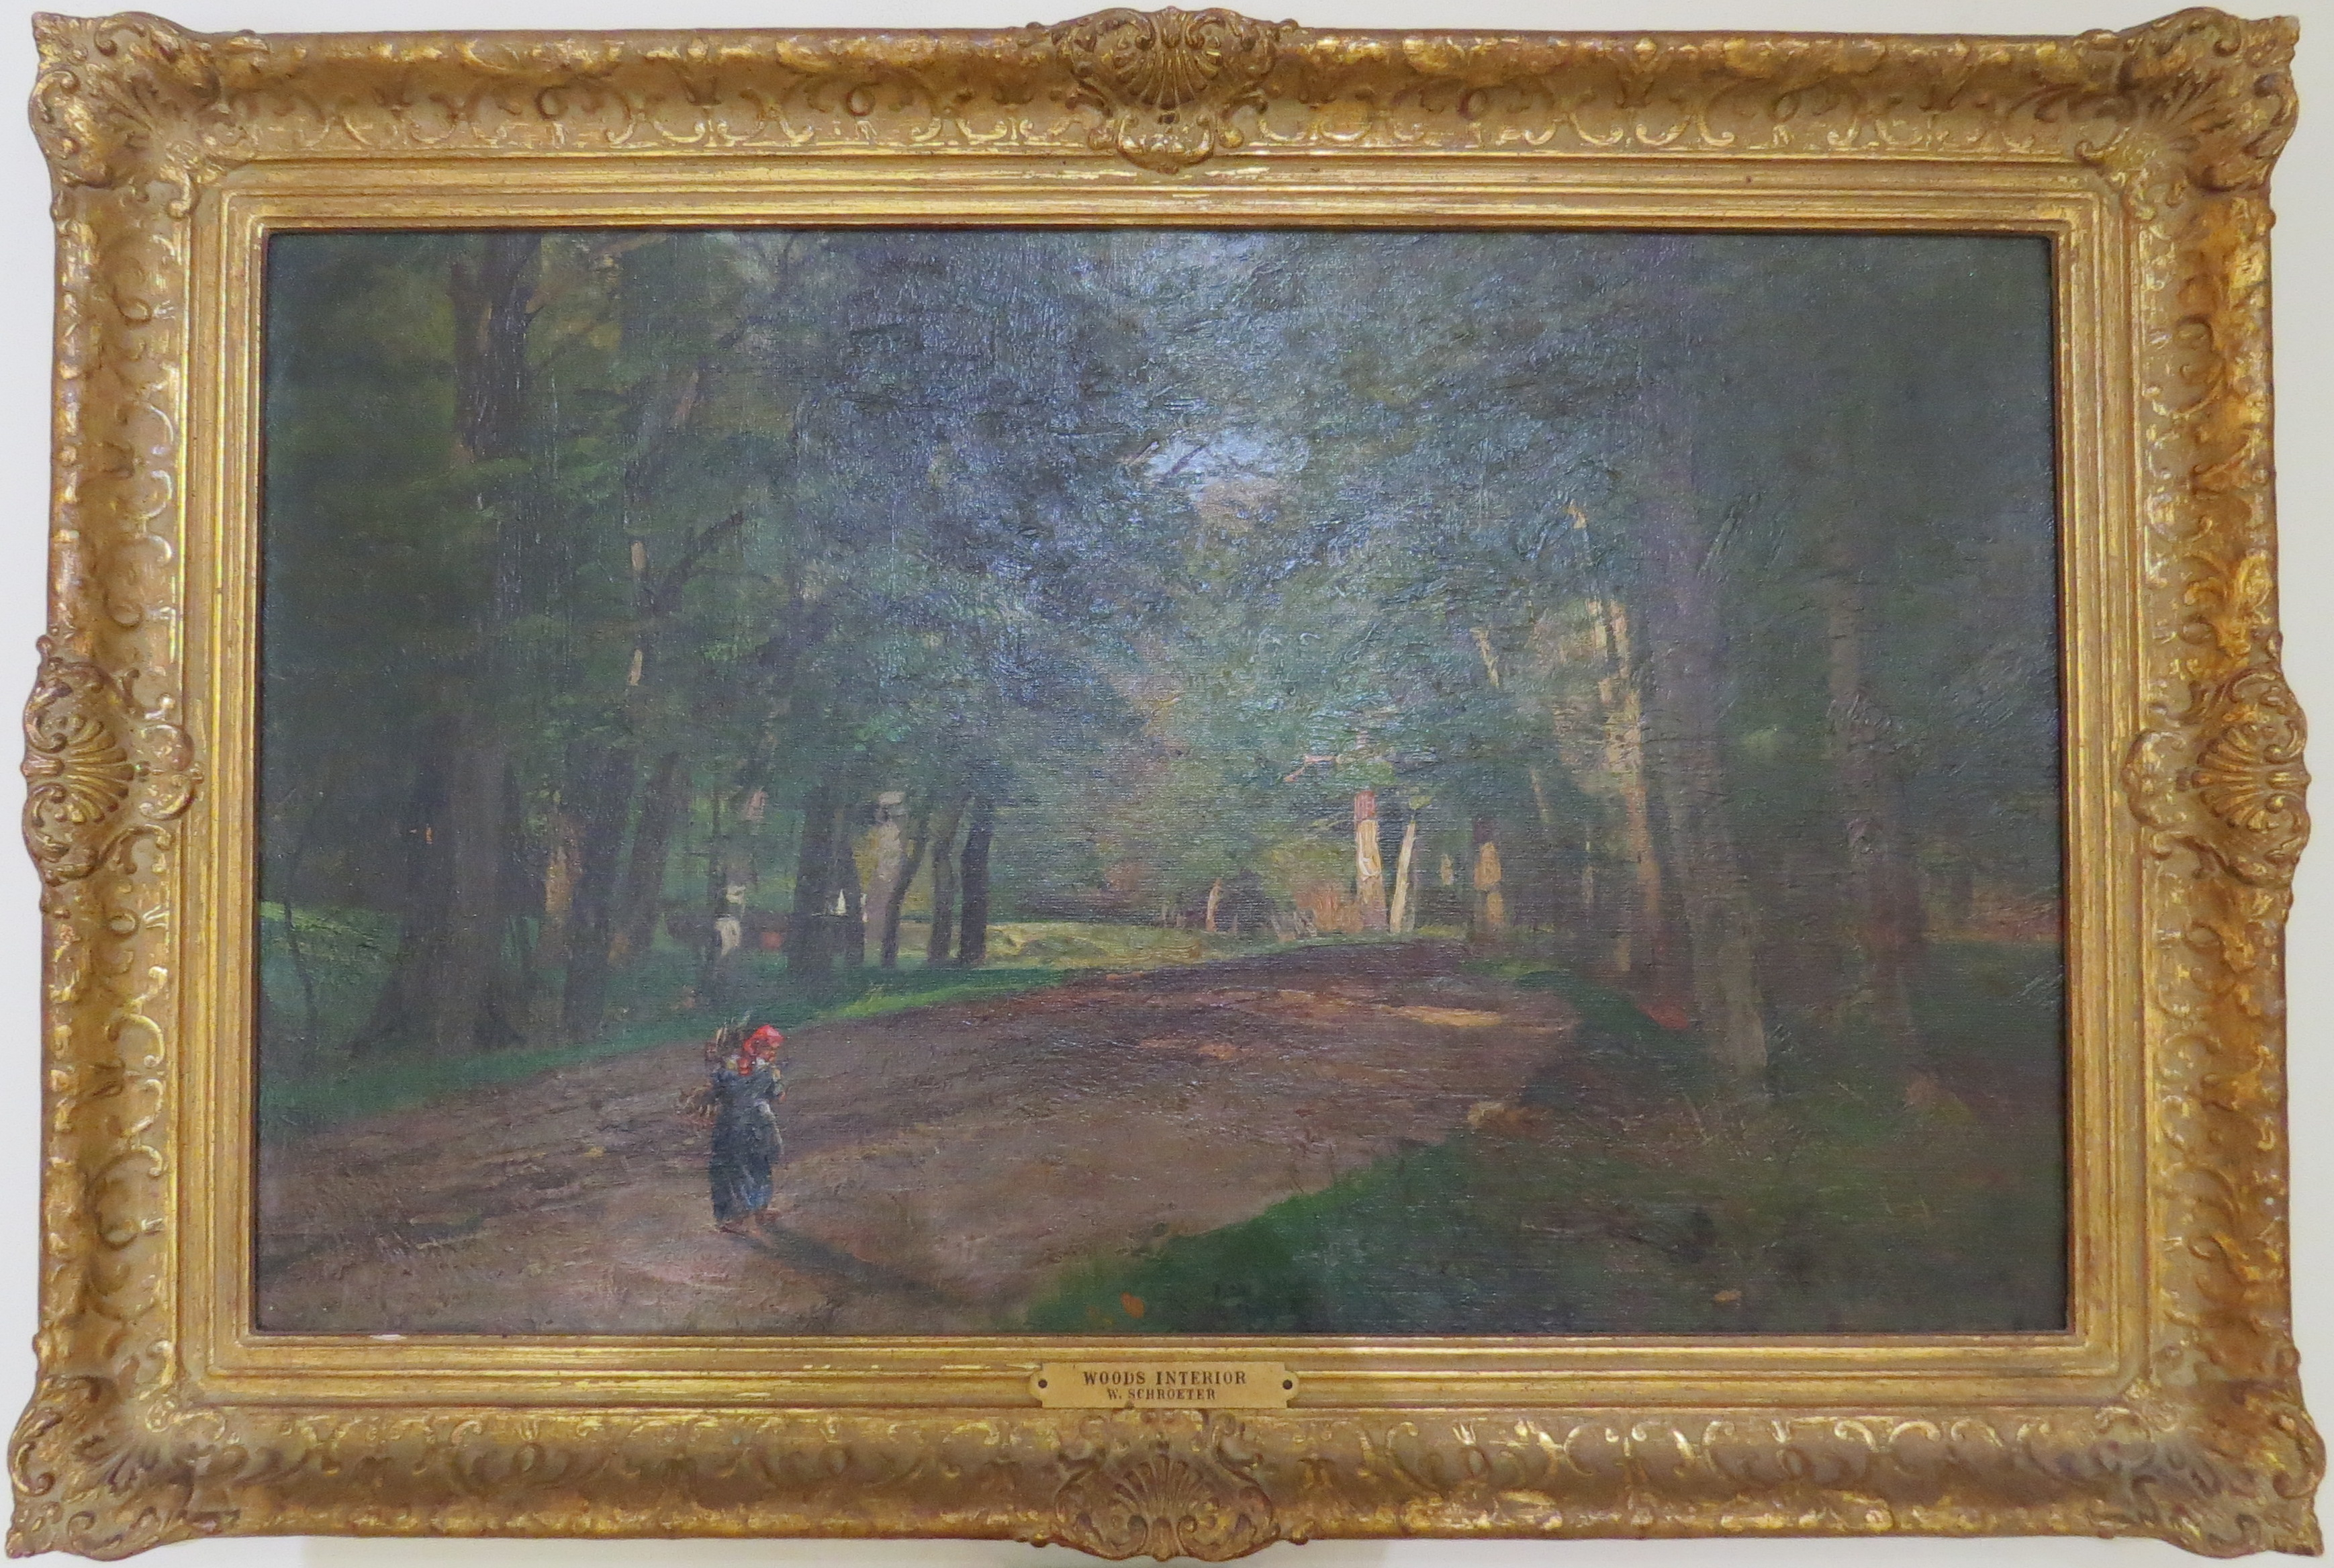 """Oil on Canvas of """"Woods Interior"""" by W. Shroeter (German, 1849-1904)"""